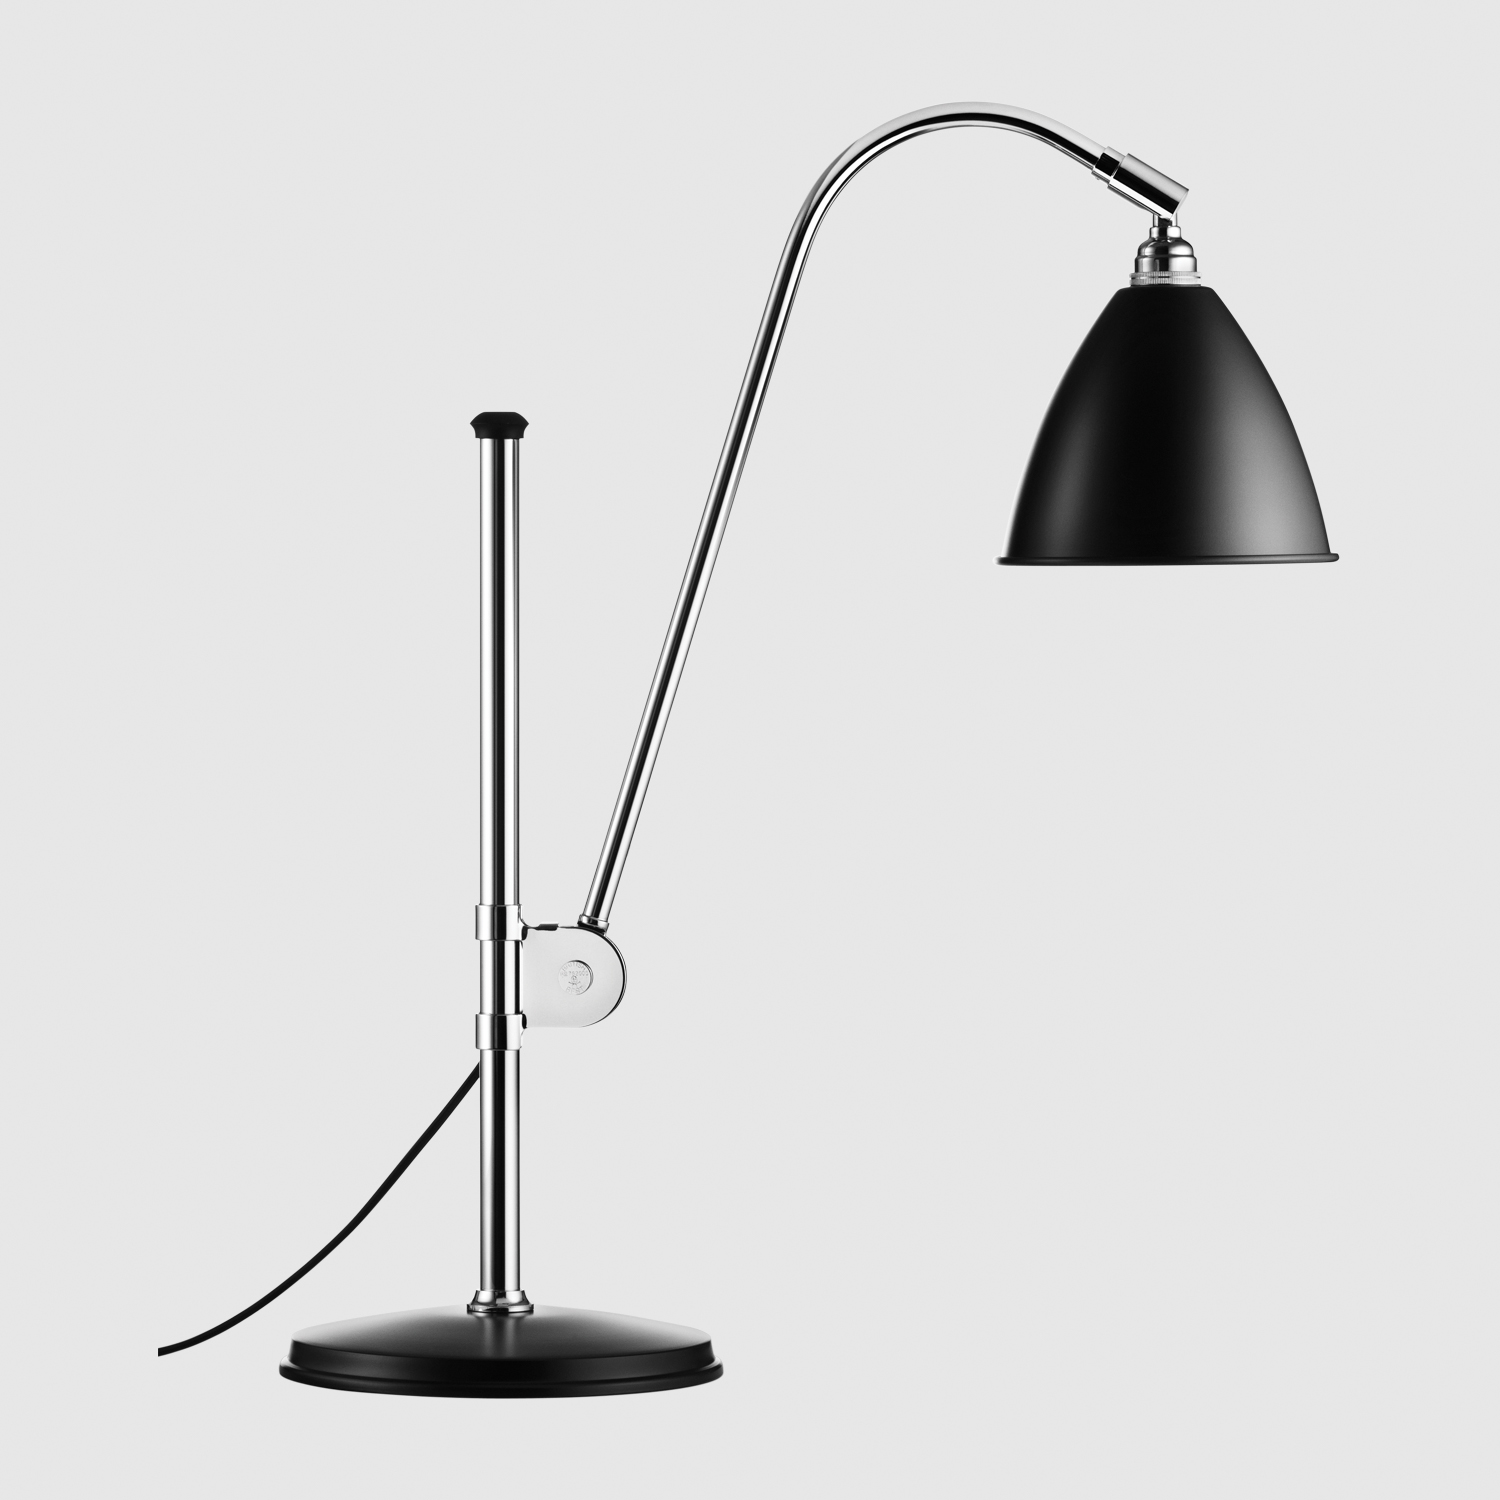 Bestlite_BL1_TableLamp_Chrome_Black.jpg